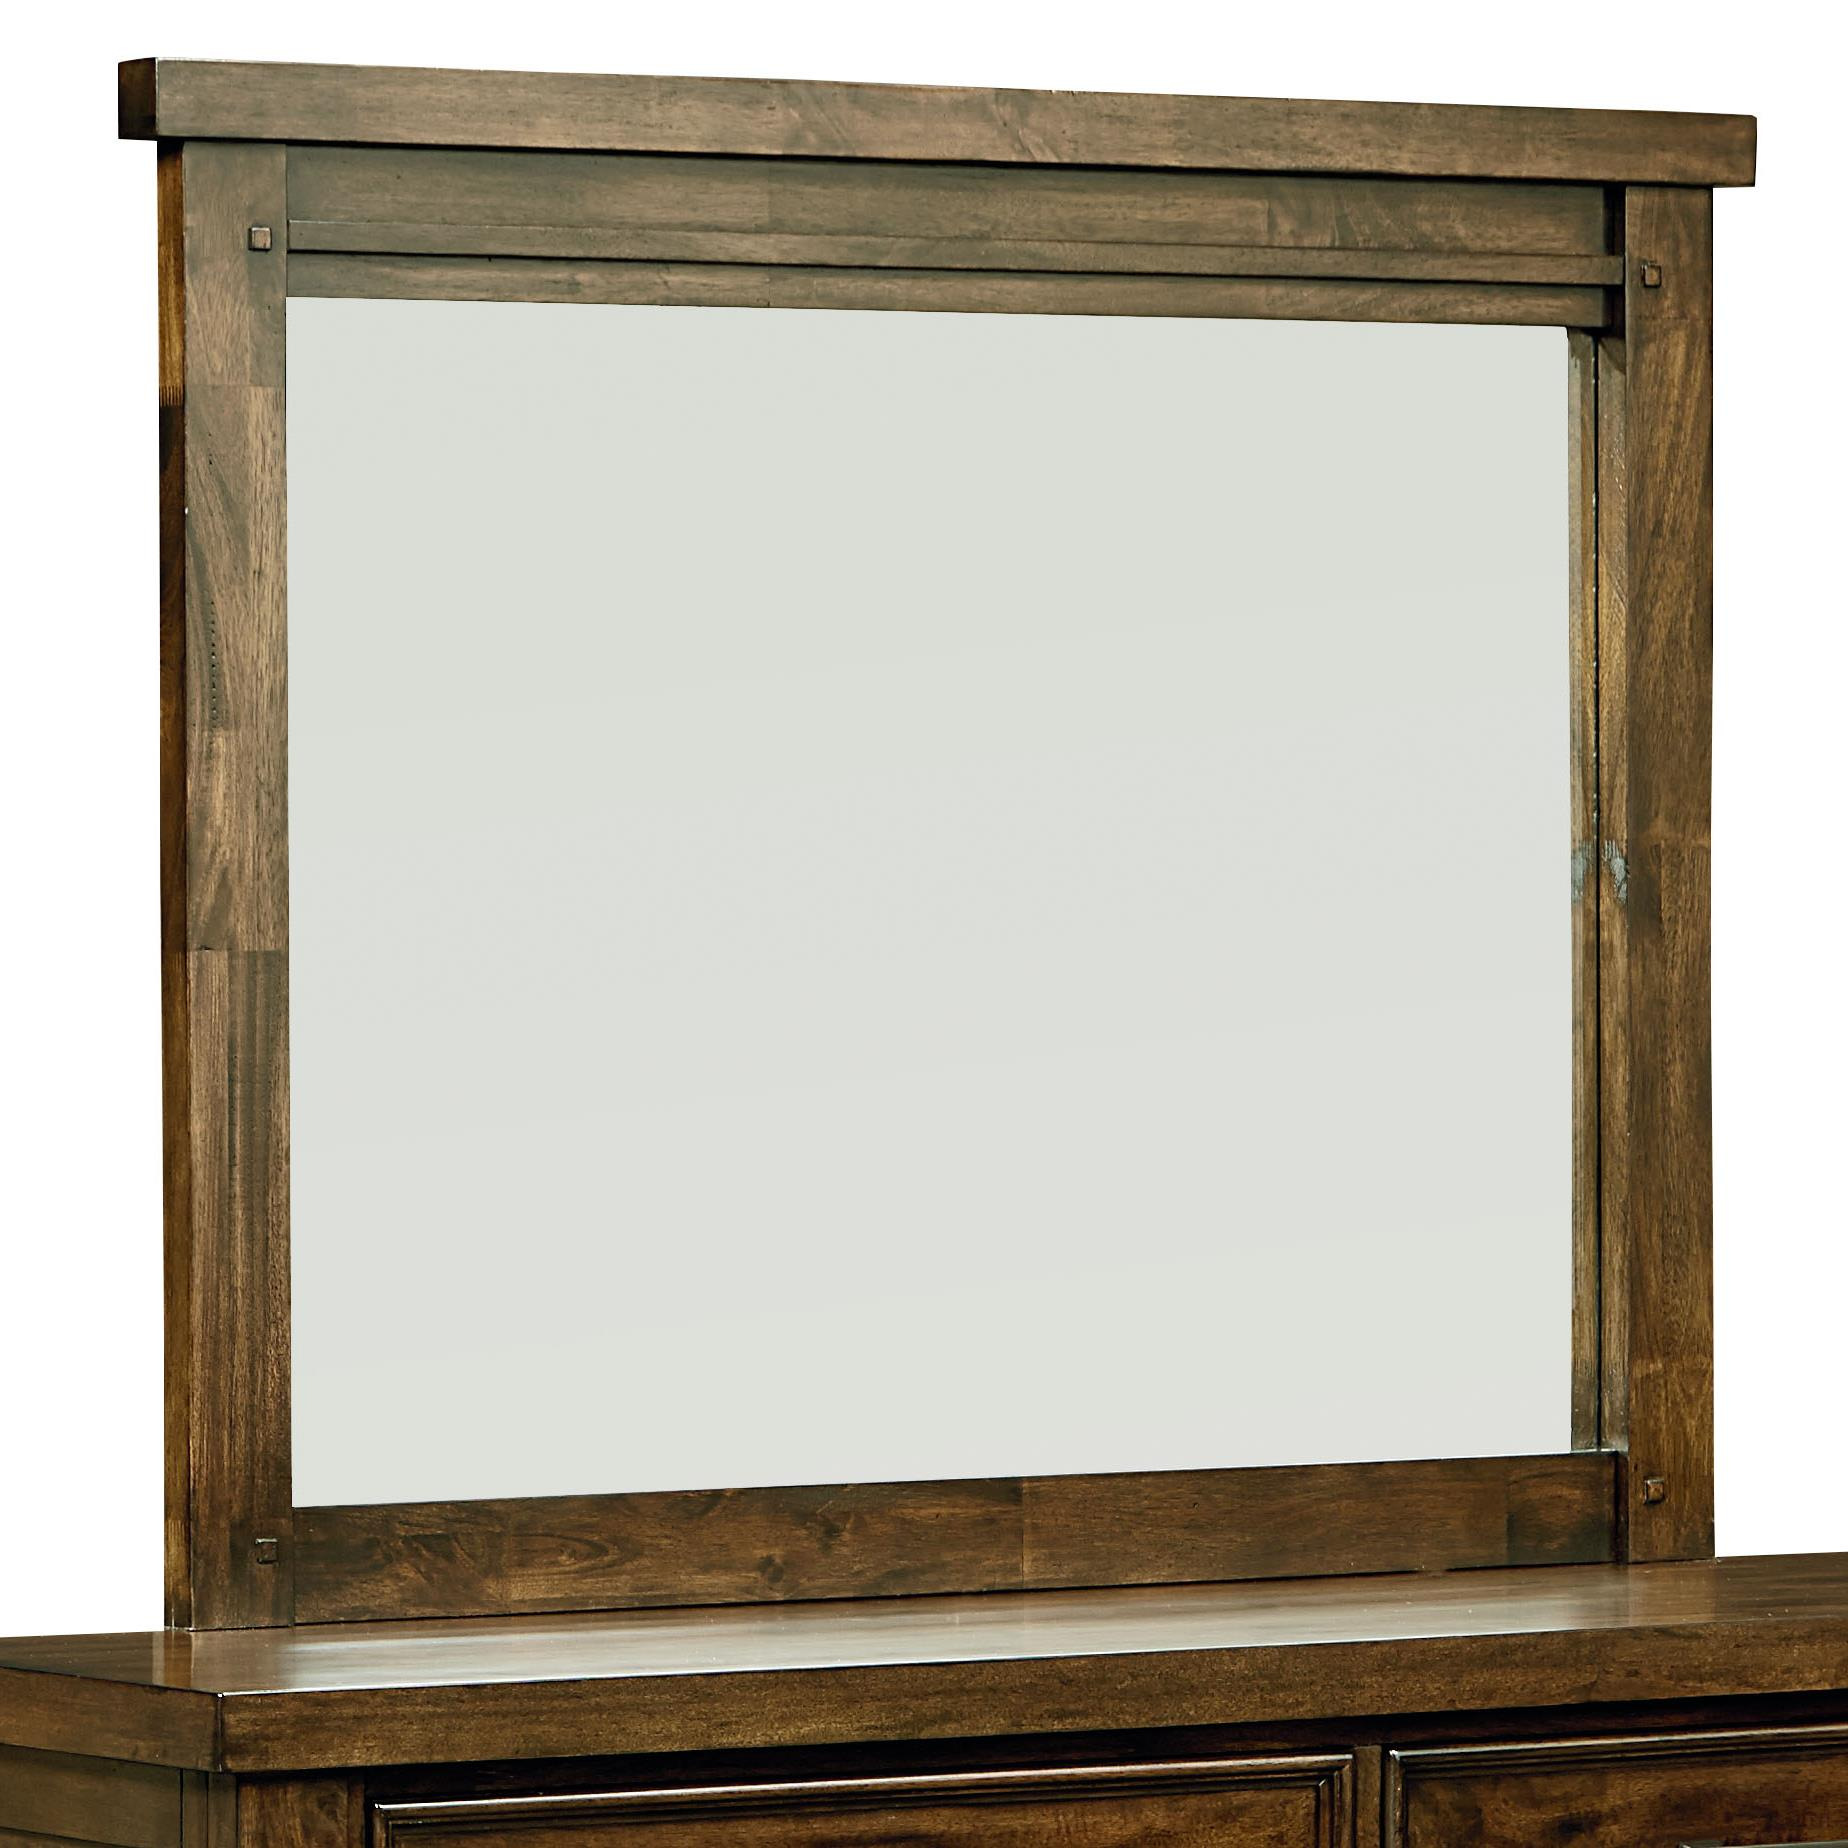 Standard Furniture Cameron Mirror                               - Item Number: 85158